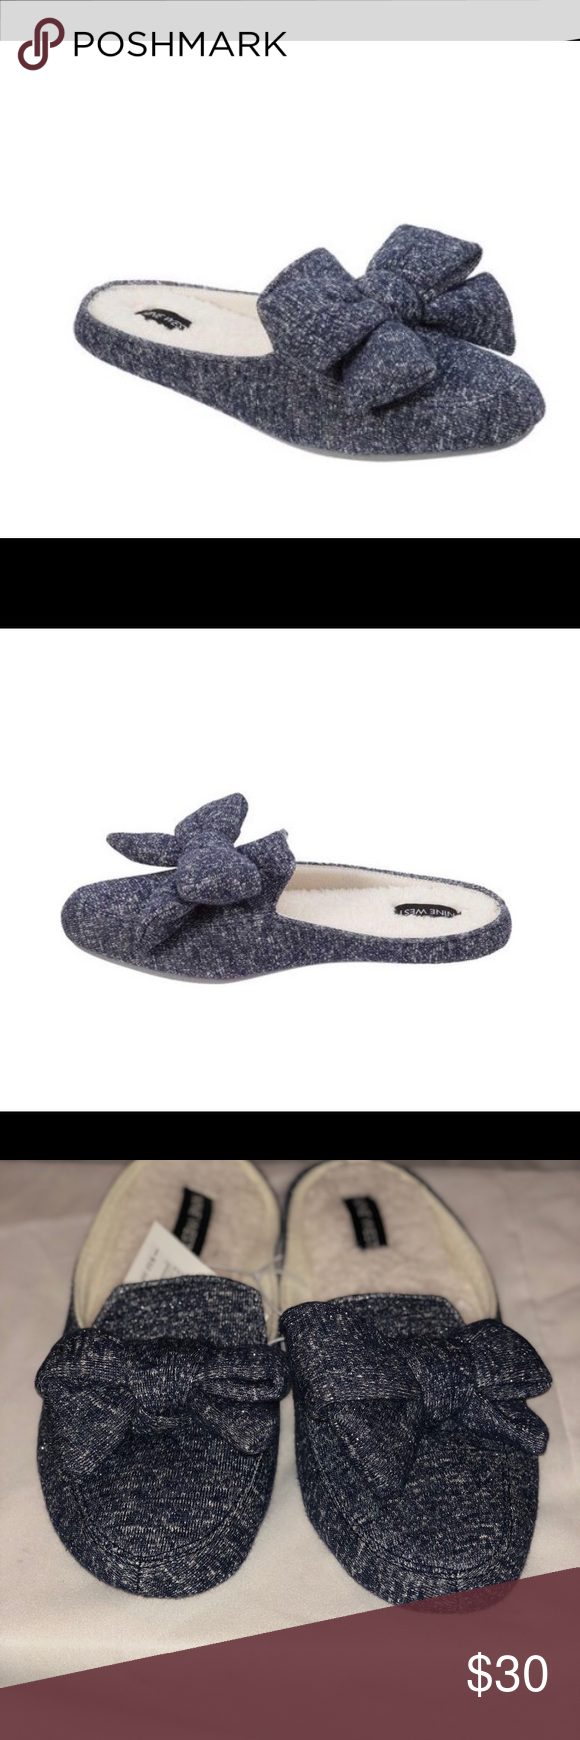 310c7607421 Nine West Loafer Scuff Slipper with Bow Fluffy microfiber terry sock  Oversized bow detail Multi-density cushioned insole with memory foam 85%  Cotton